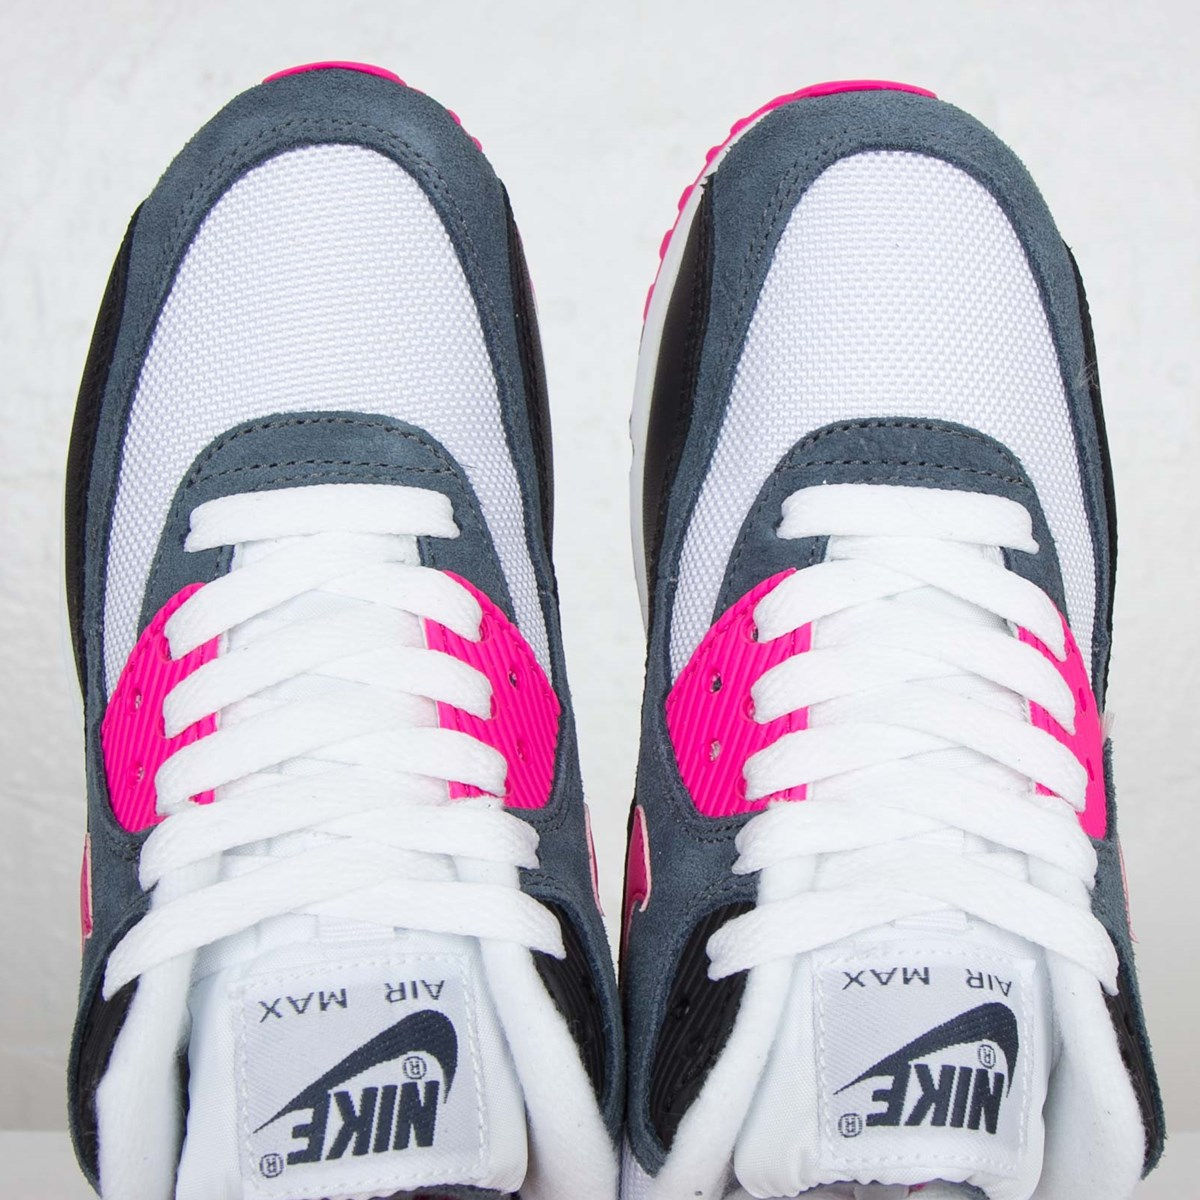 separation shoes ce626 5e201 Nike Wmns Air Max 90 Essential - 616730-100 - Sneakersnstuff   sneakers    streetwear online since 1999